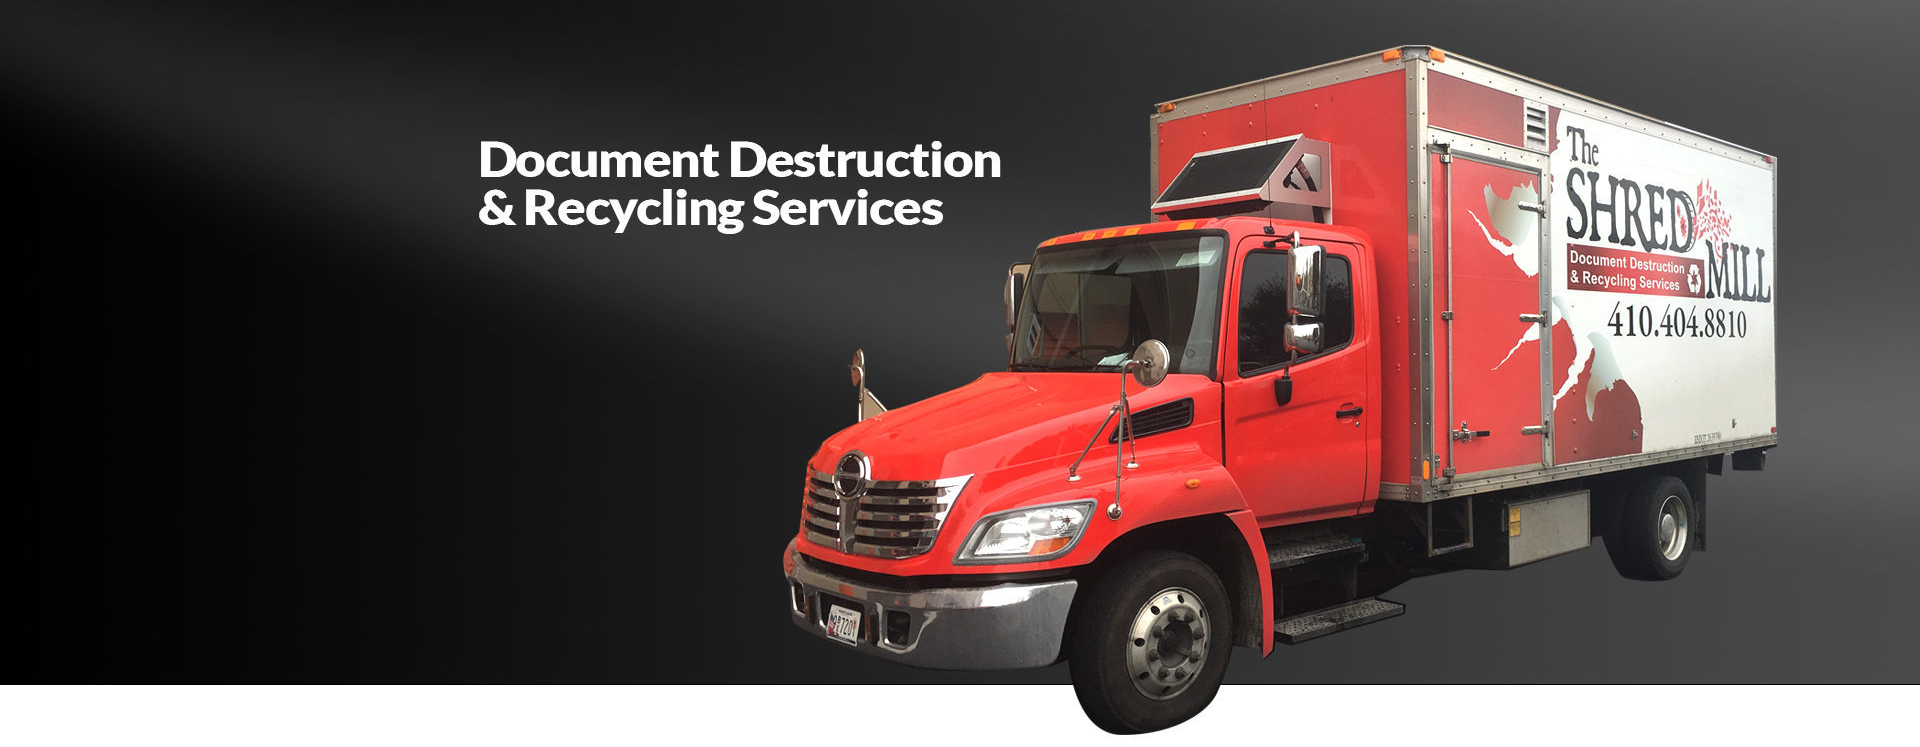 Document Destruction & Recycling Services